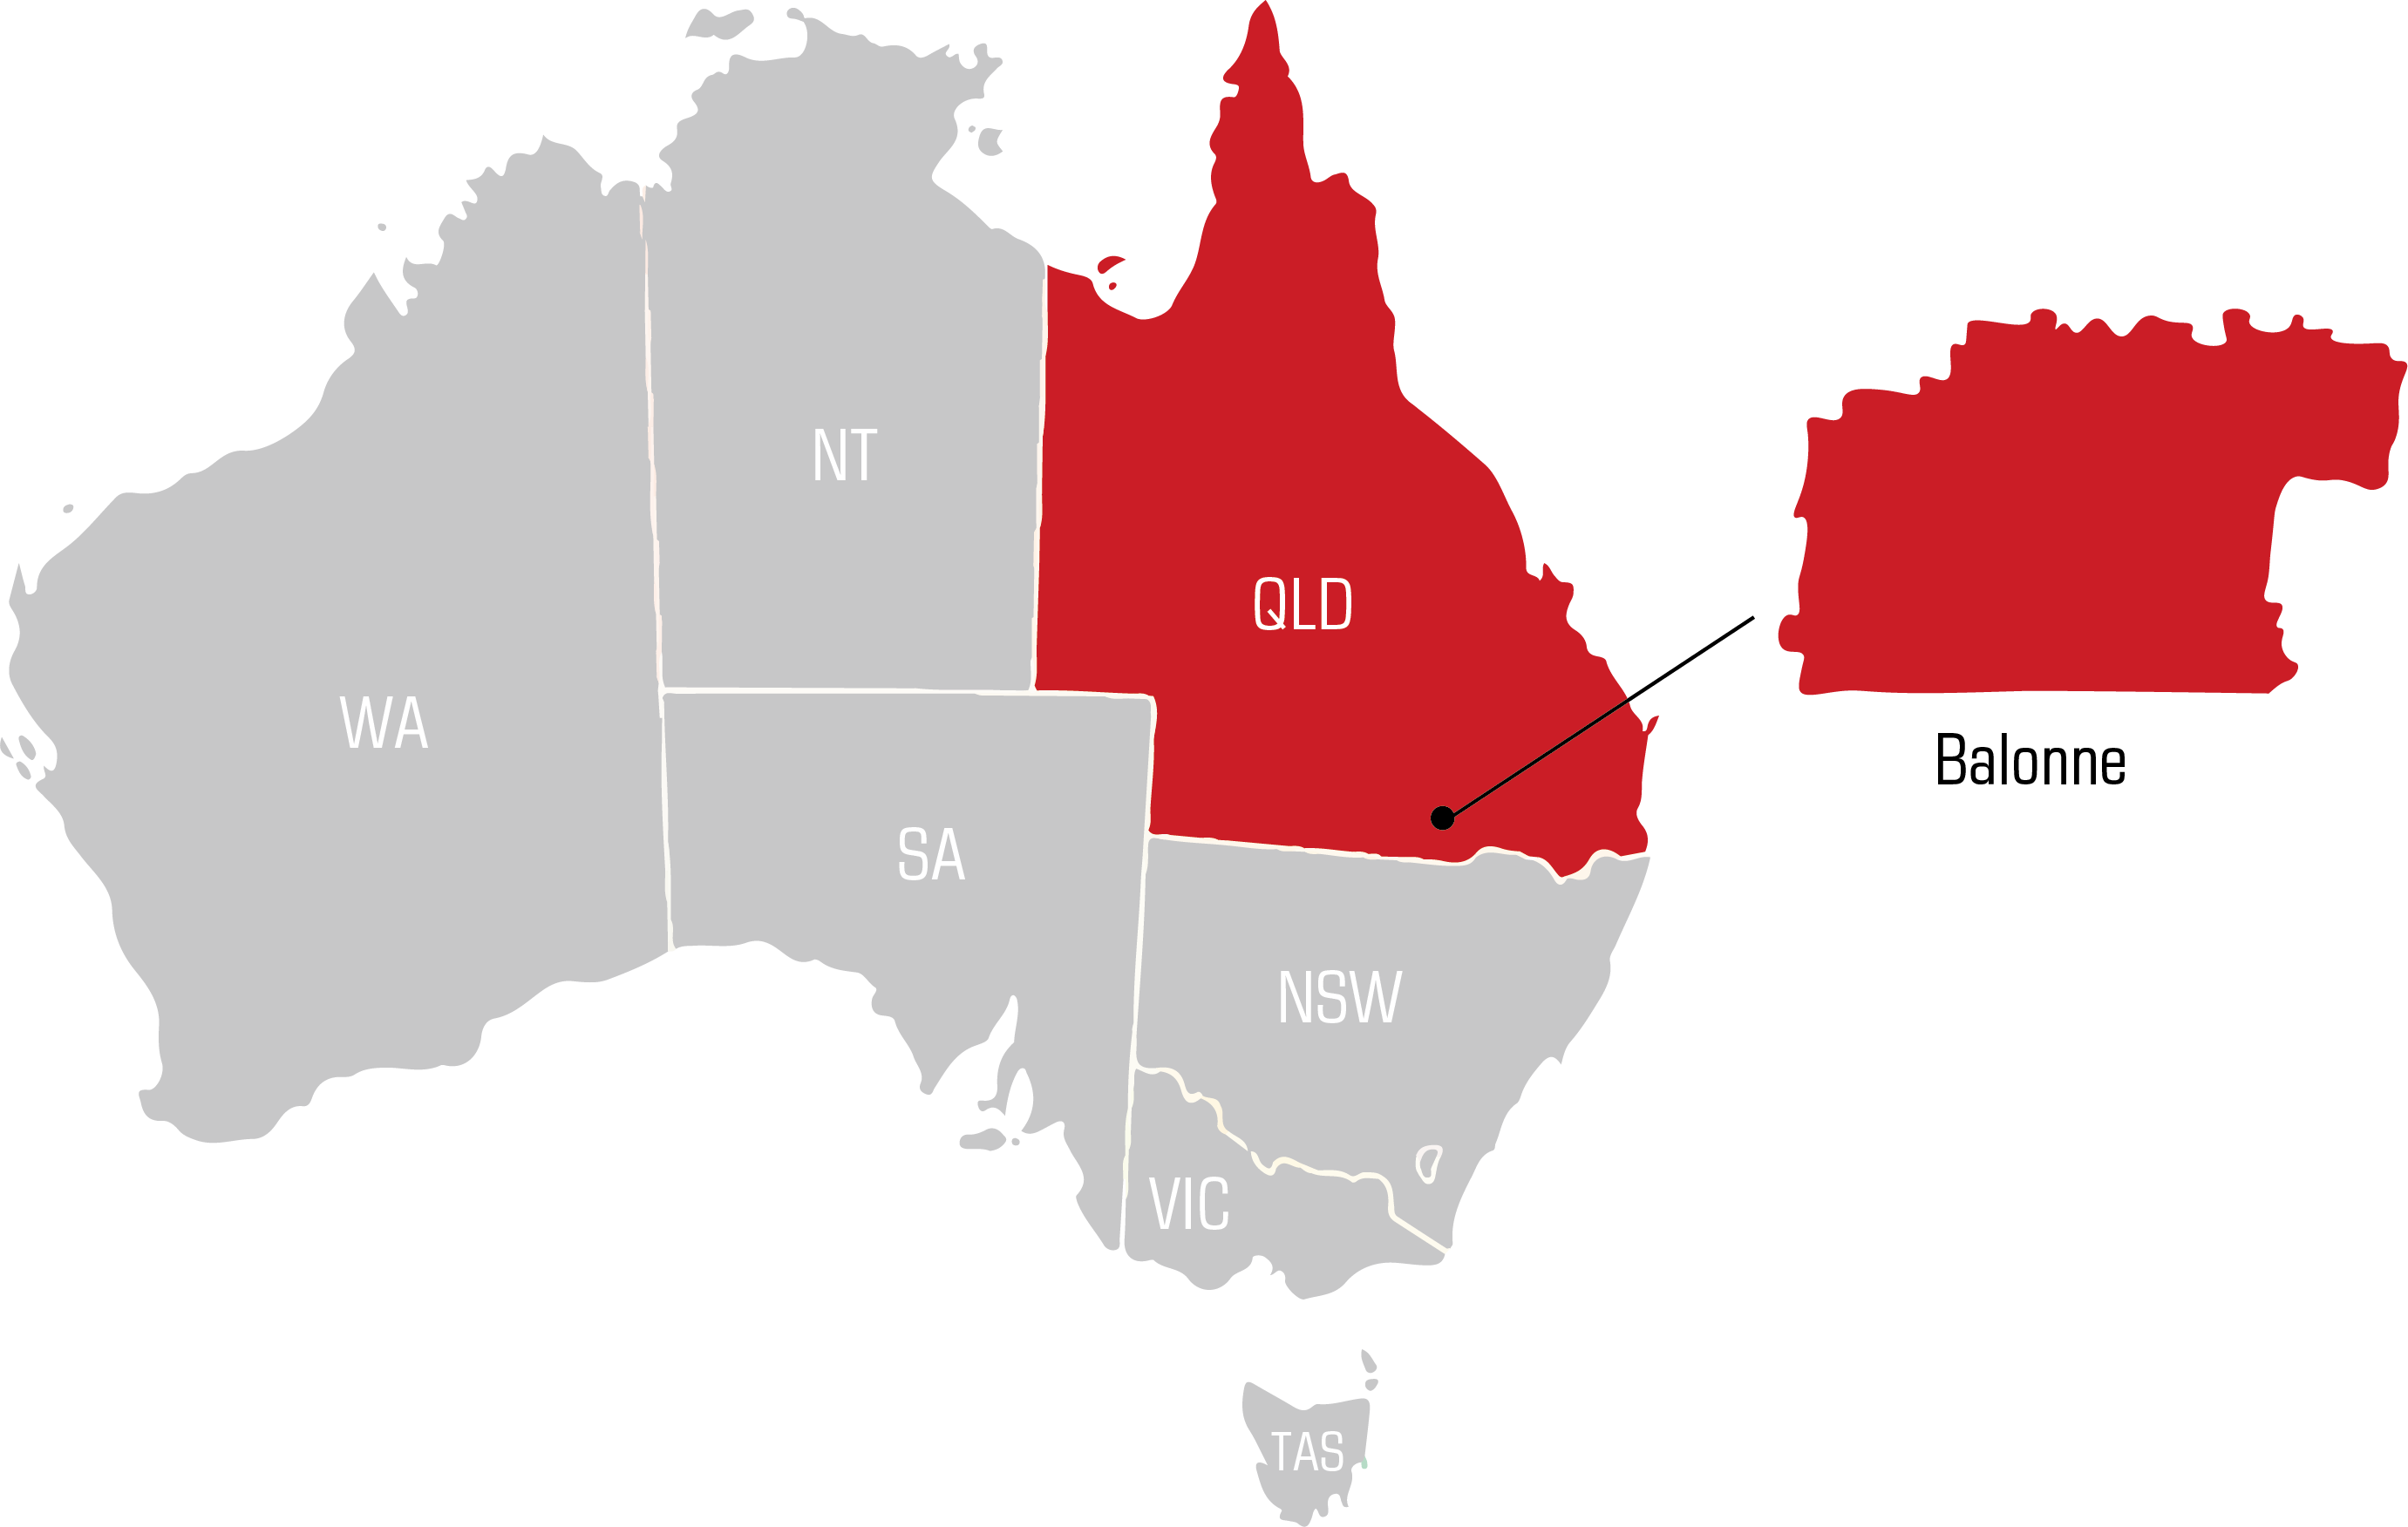 QWS moree Welding Supplies map